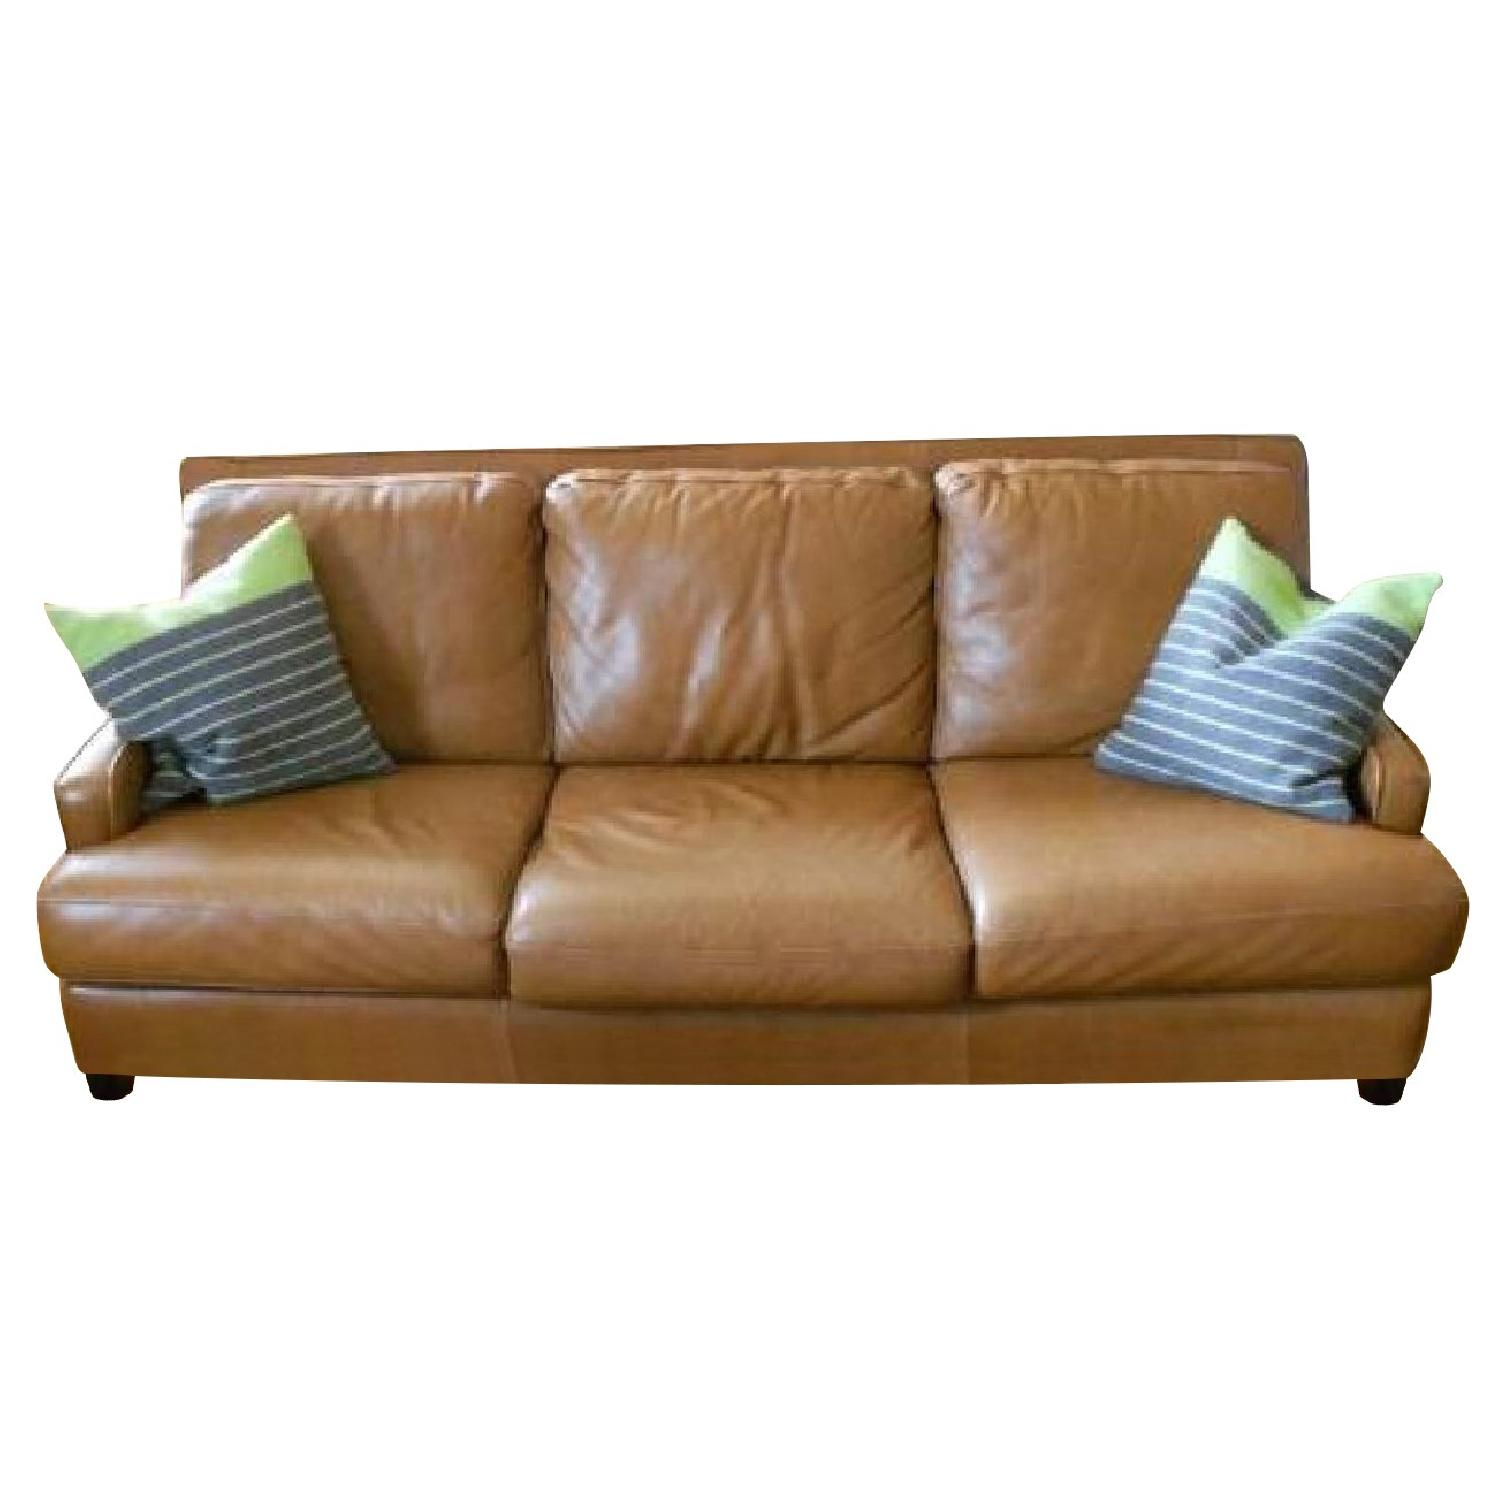 Leather Couch - image-0